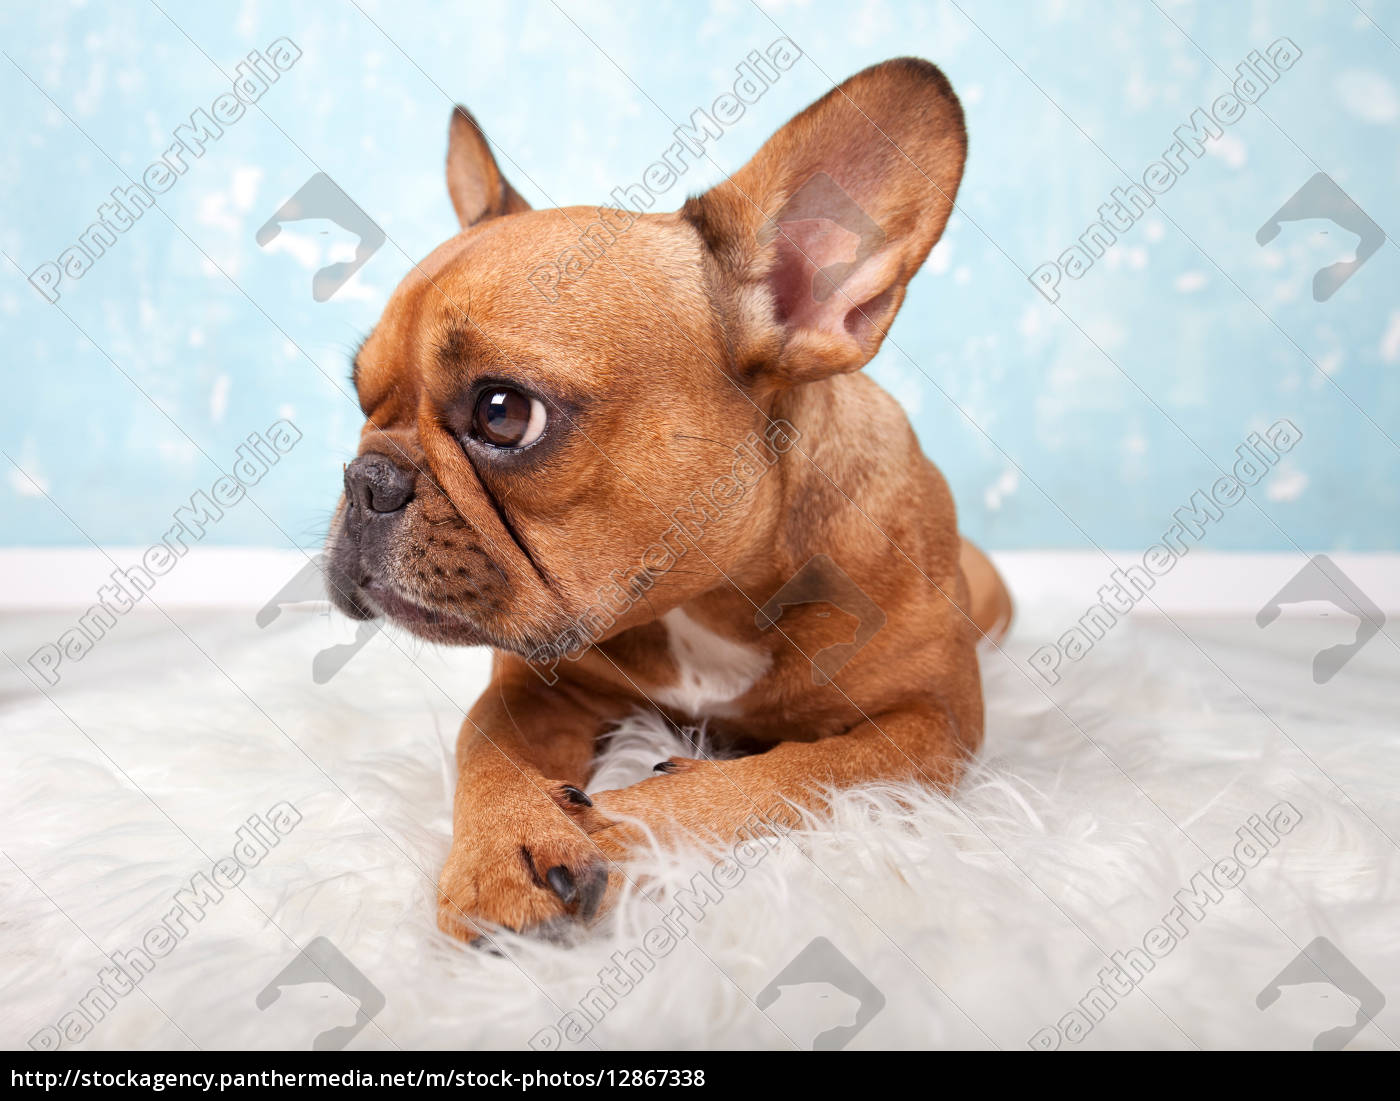 kleine franz sische bulldogge stock photo 12867338 bildagentur panthermedia. Black Bedroom Furniture Sets. Home Design Ideas